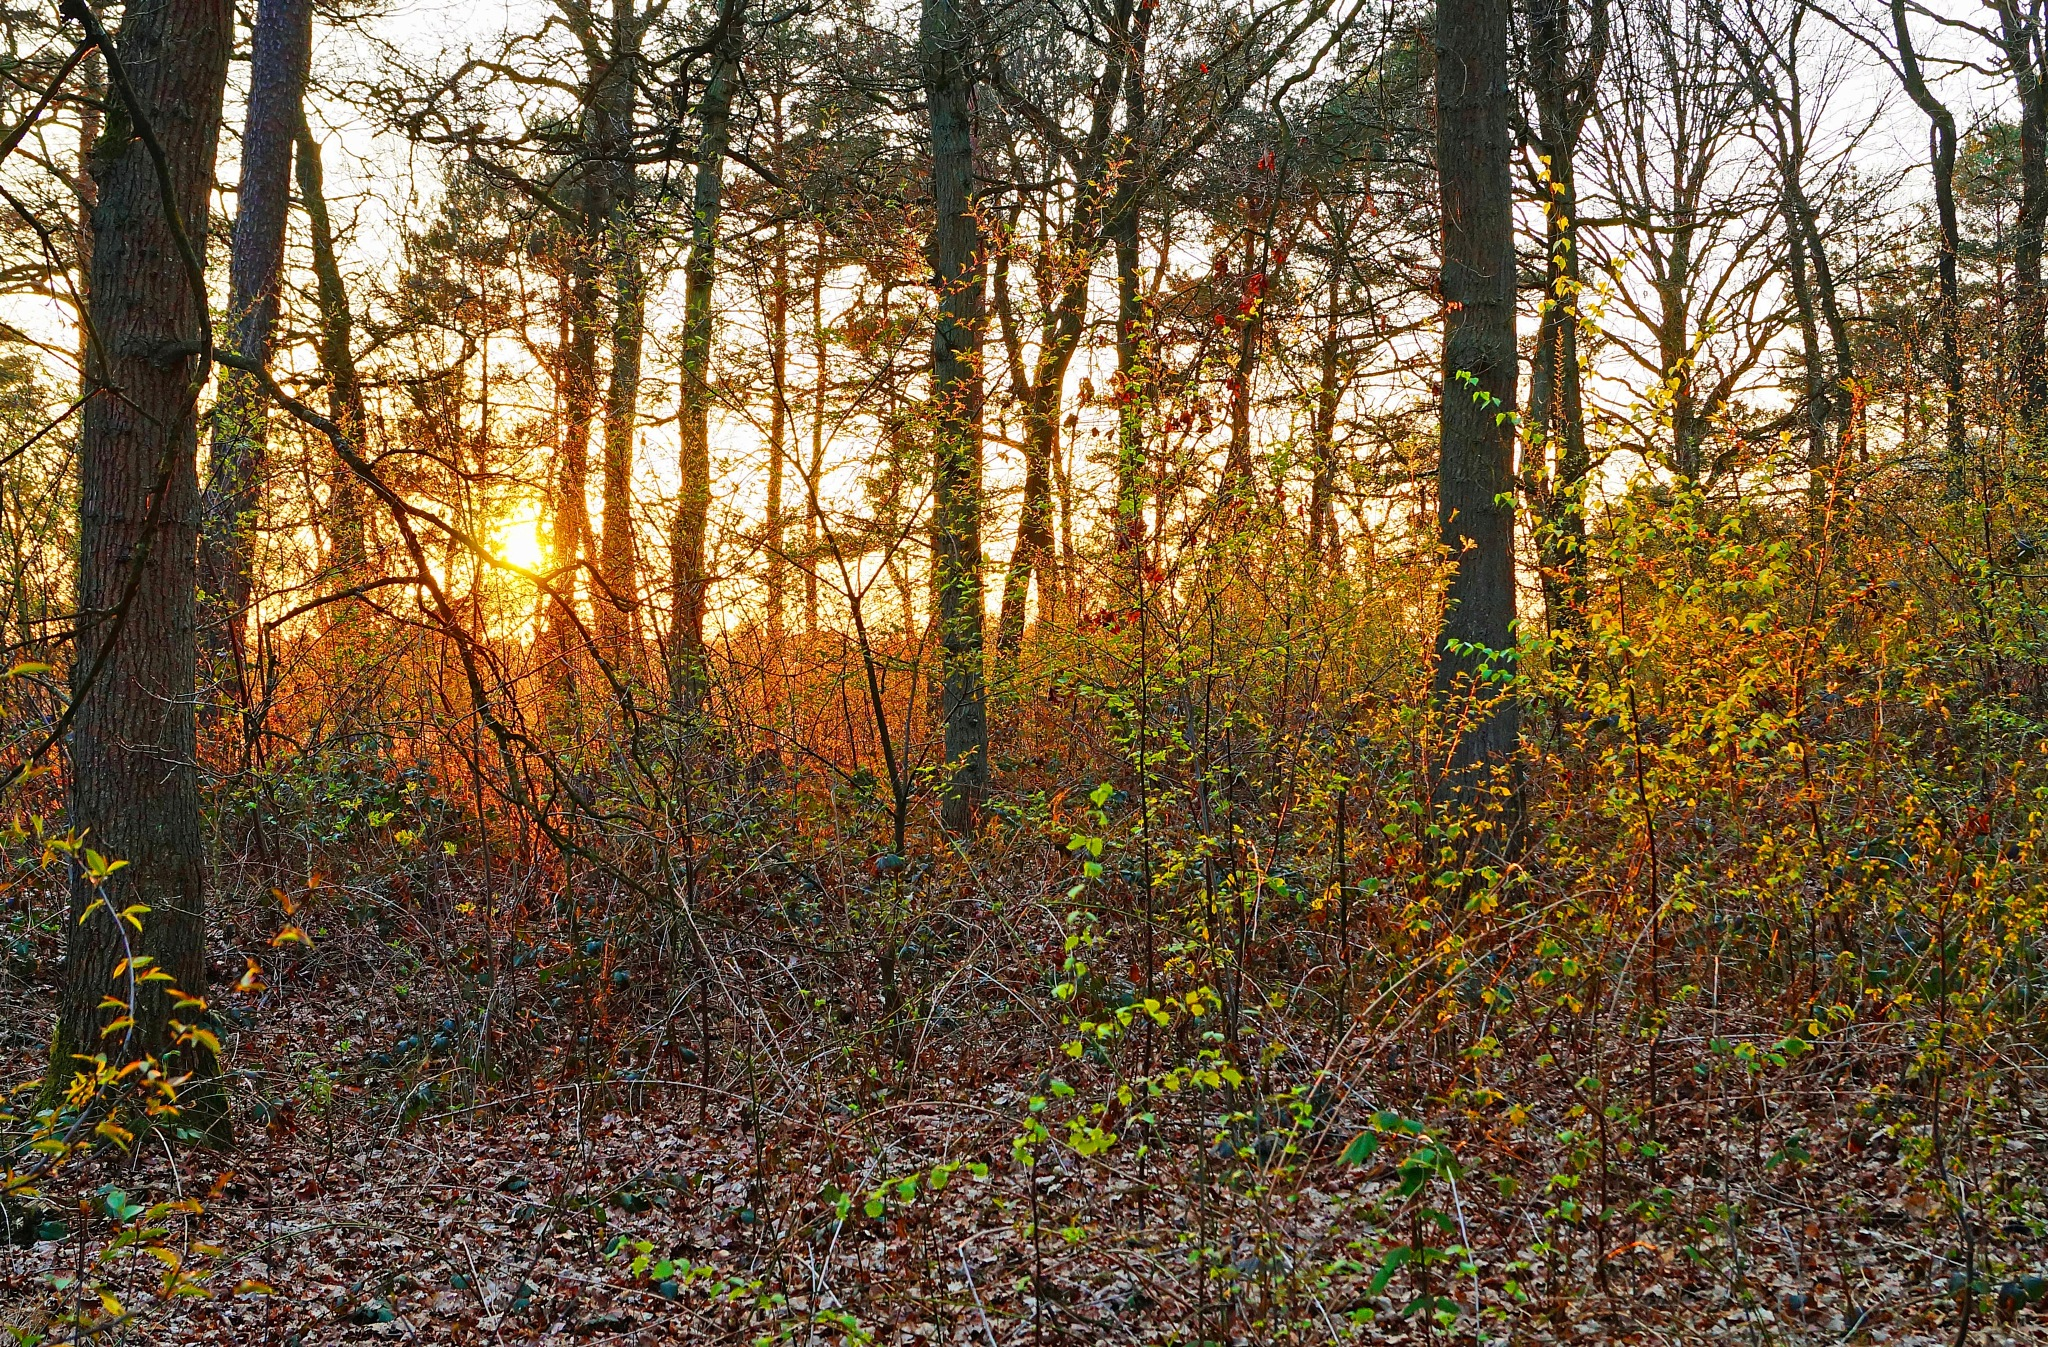 Sunset in the Woods by Marian Baay